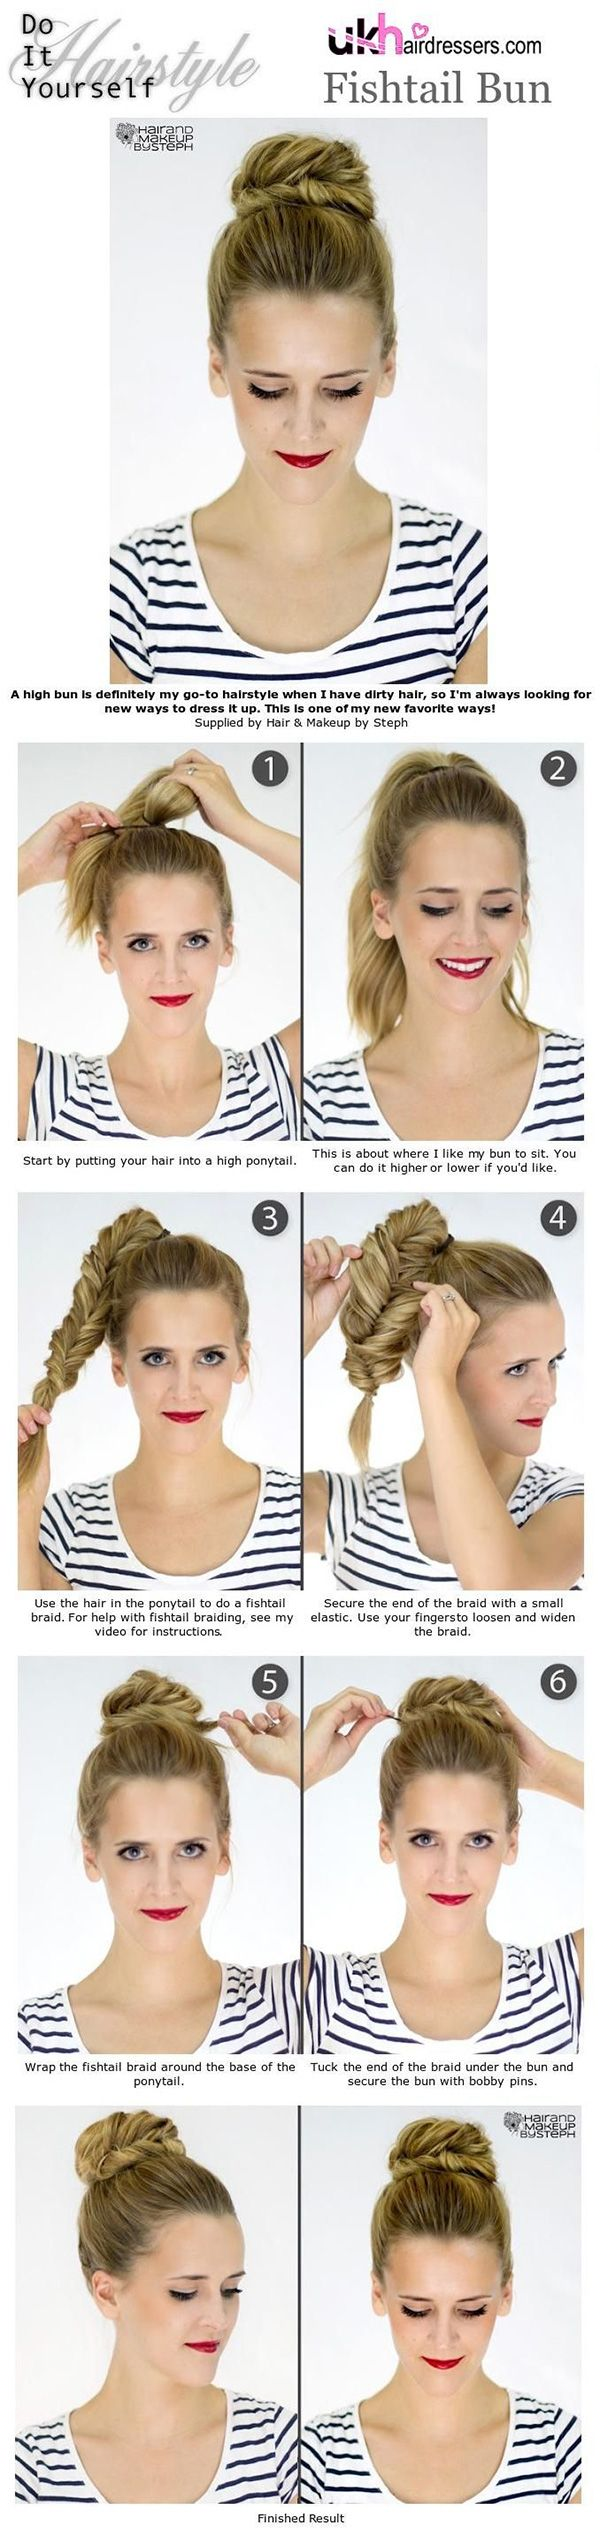 Pin on ALL THINGS HAIR